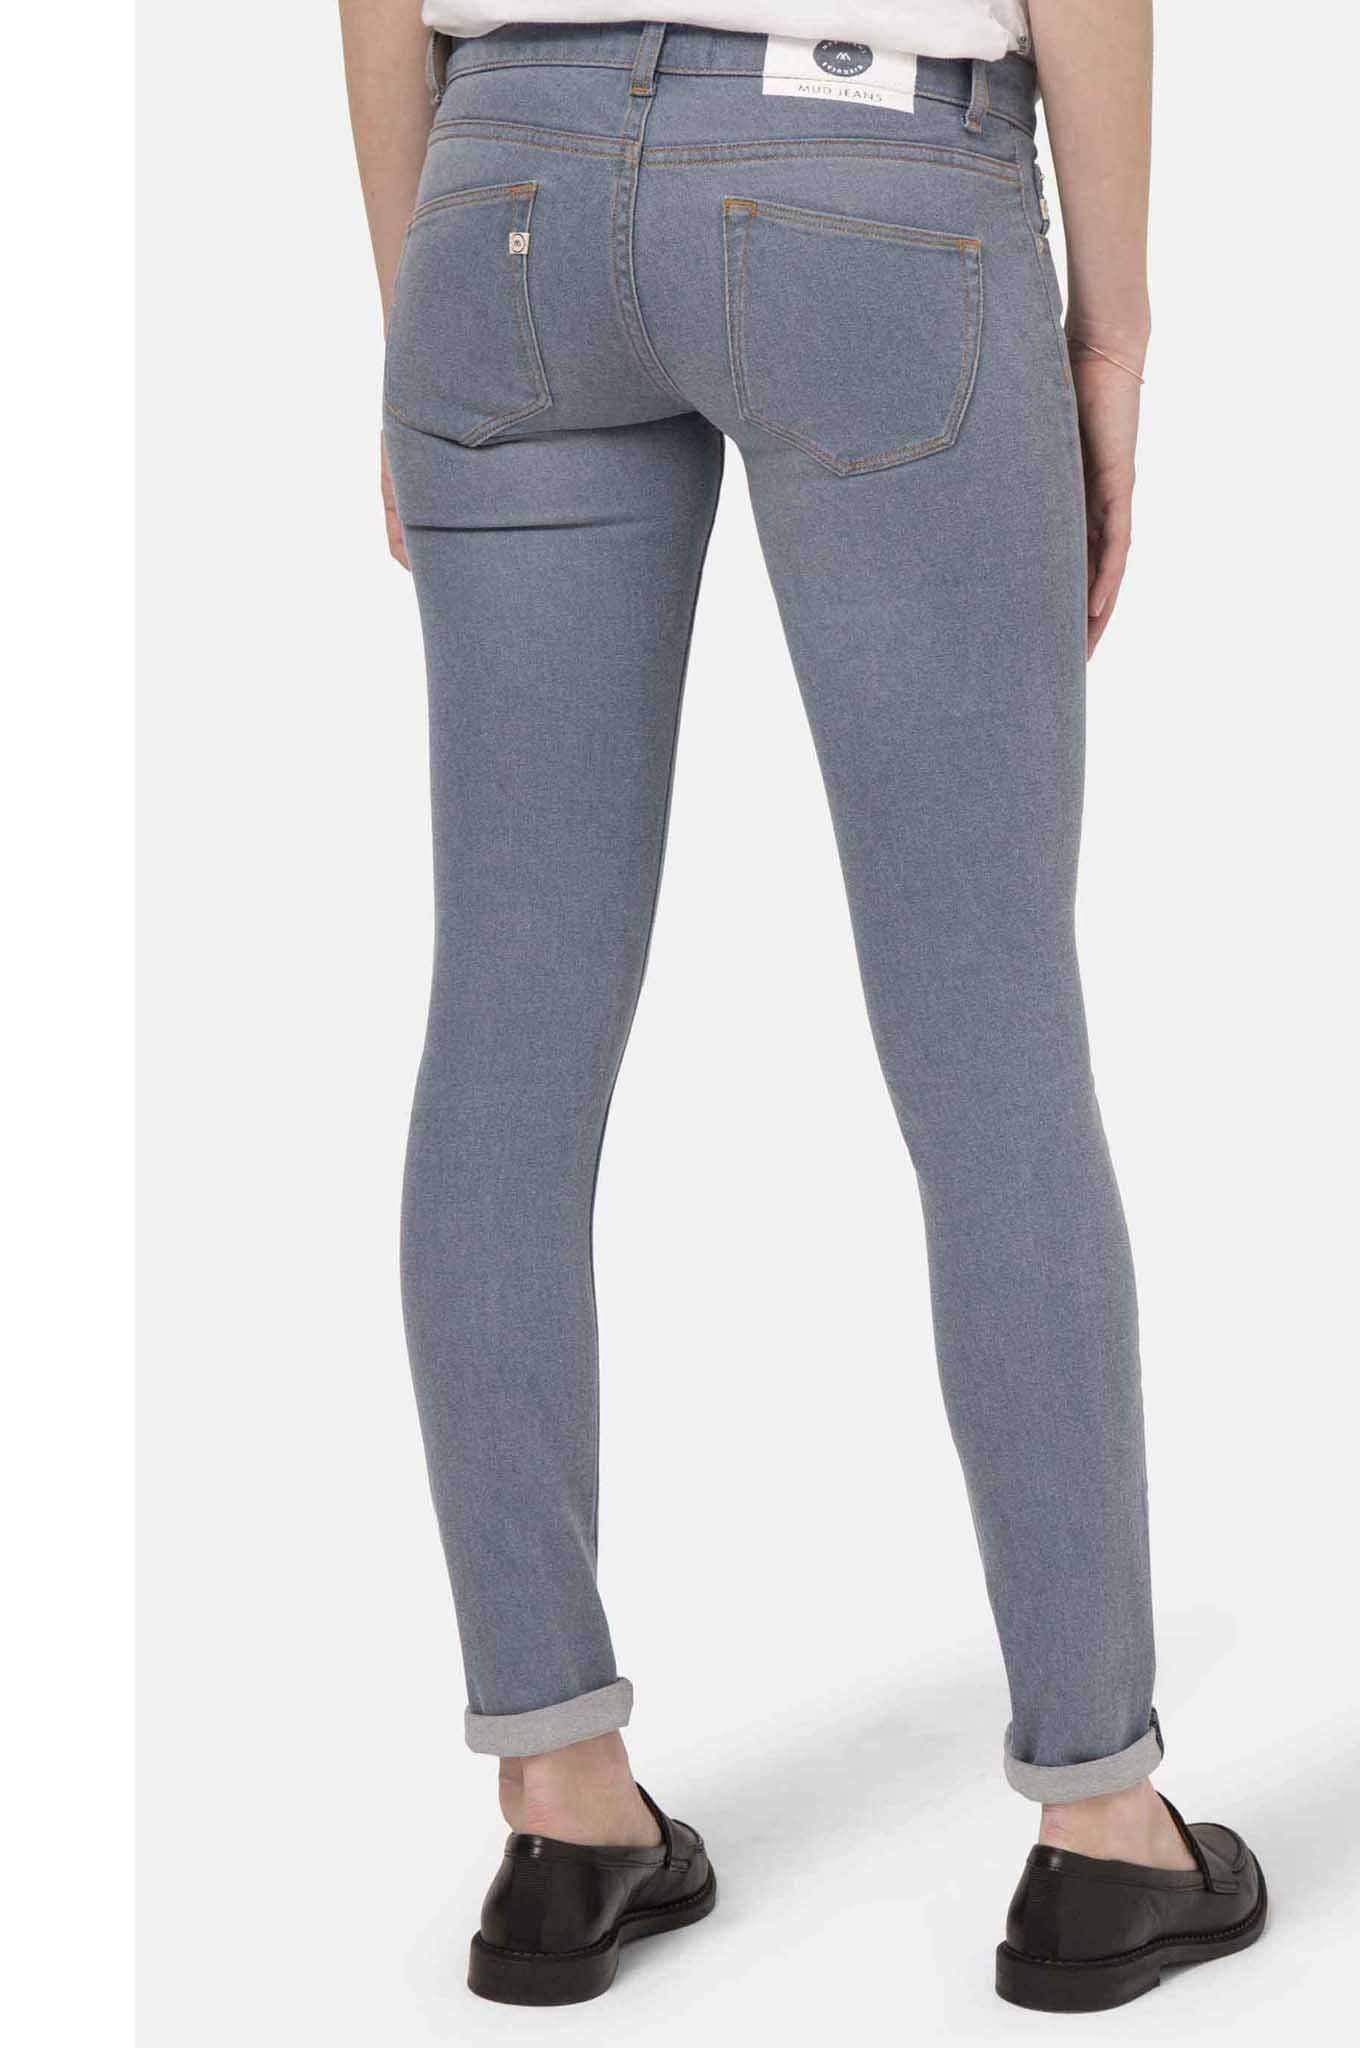 KOMODO pant LILLY Skinny Jeans. Organic Cotton and Recycled Jeans. sustainable fashion ethical fashion